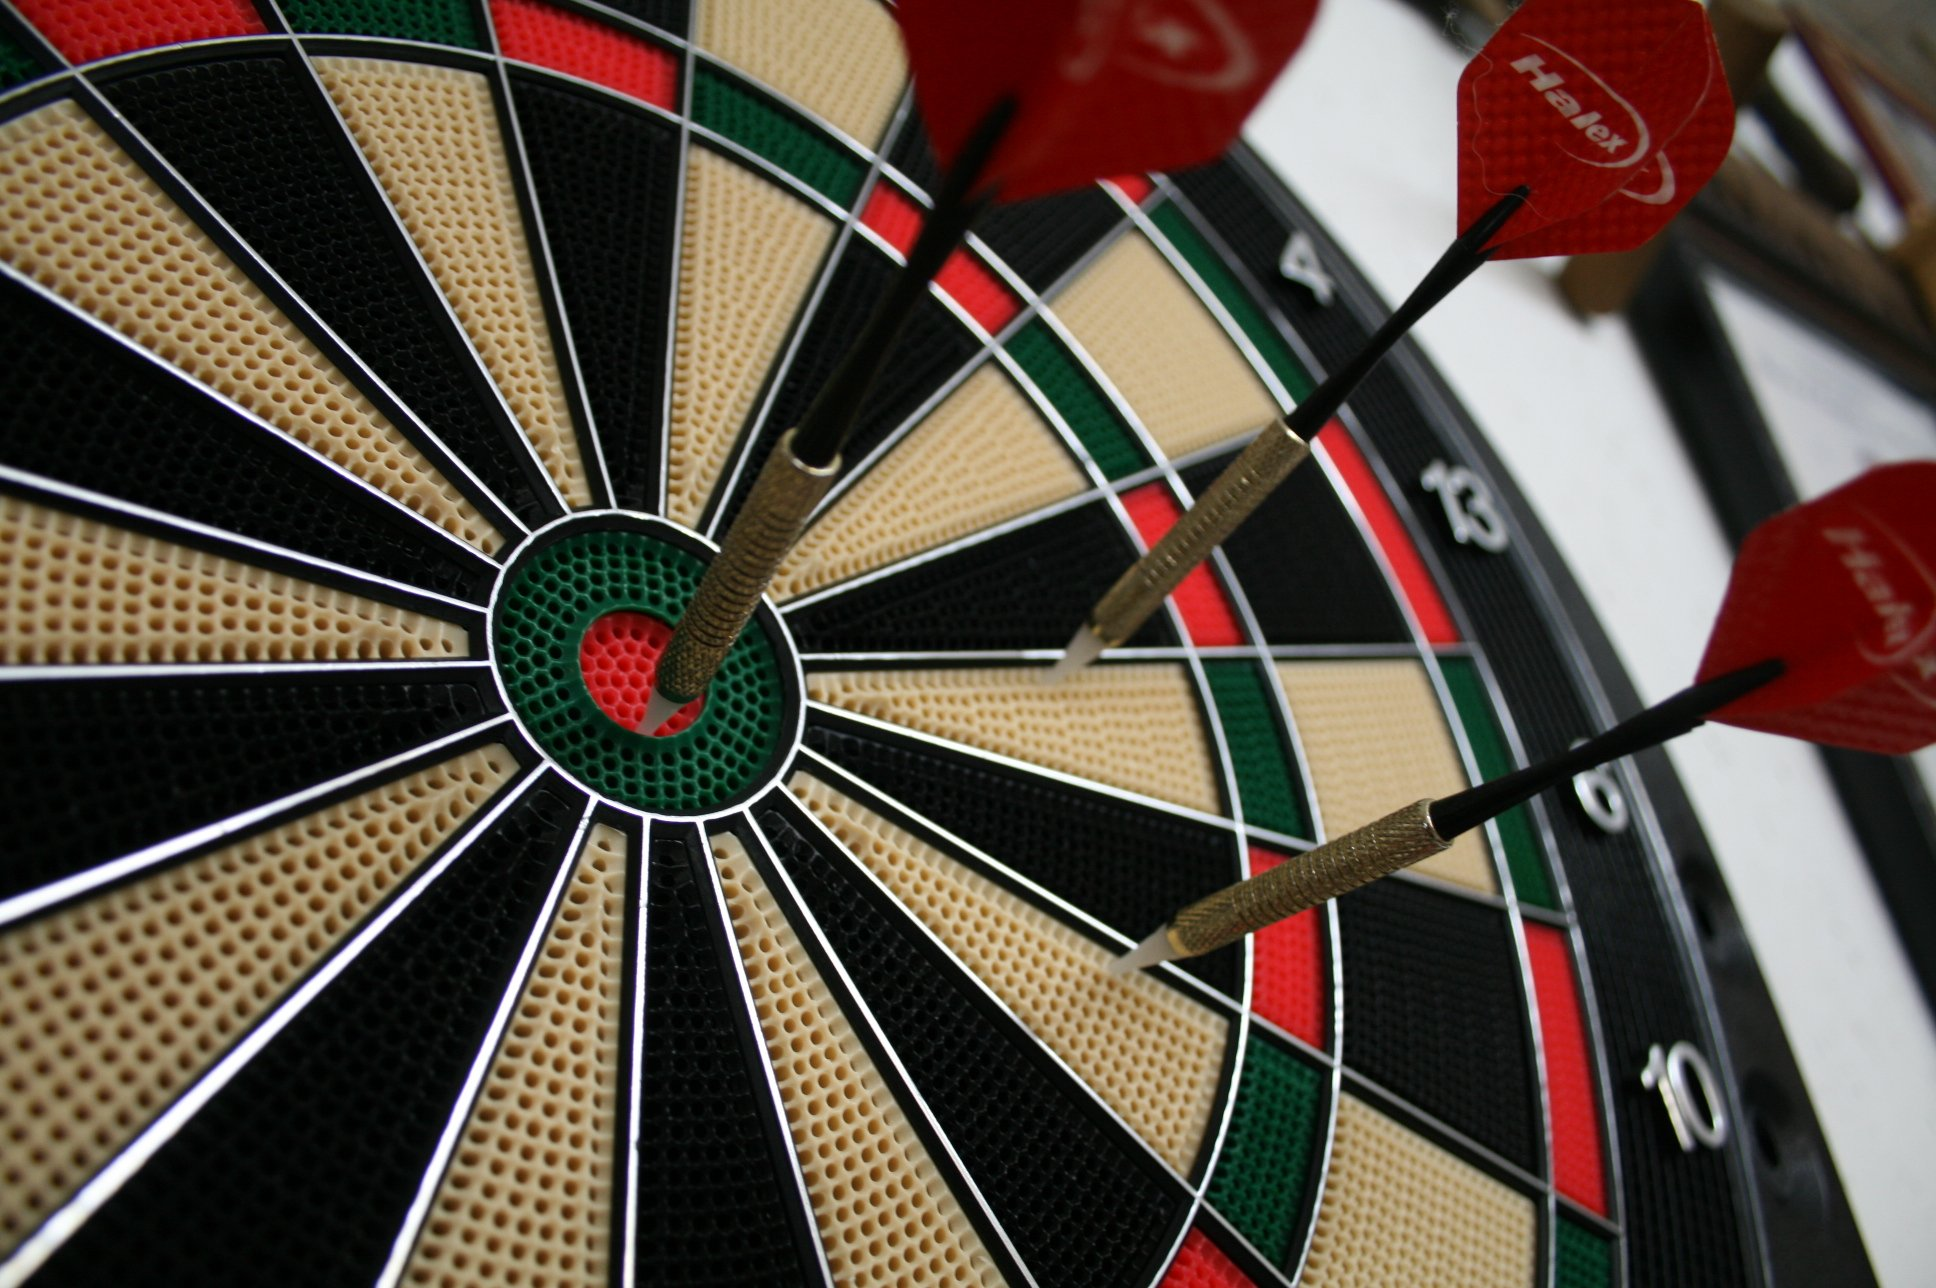 darts hd wallpaper 57868